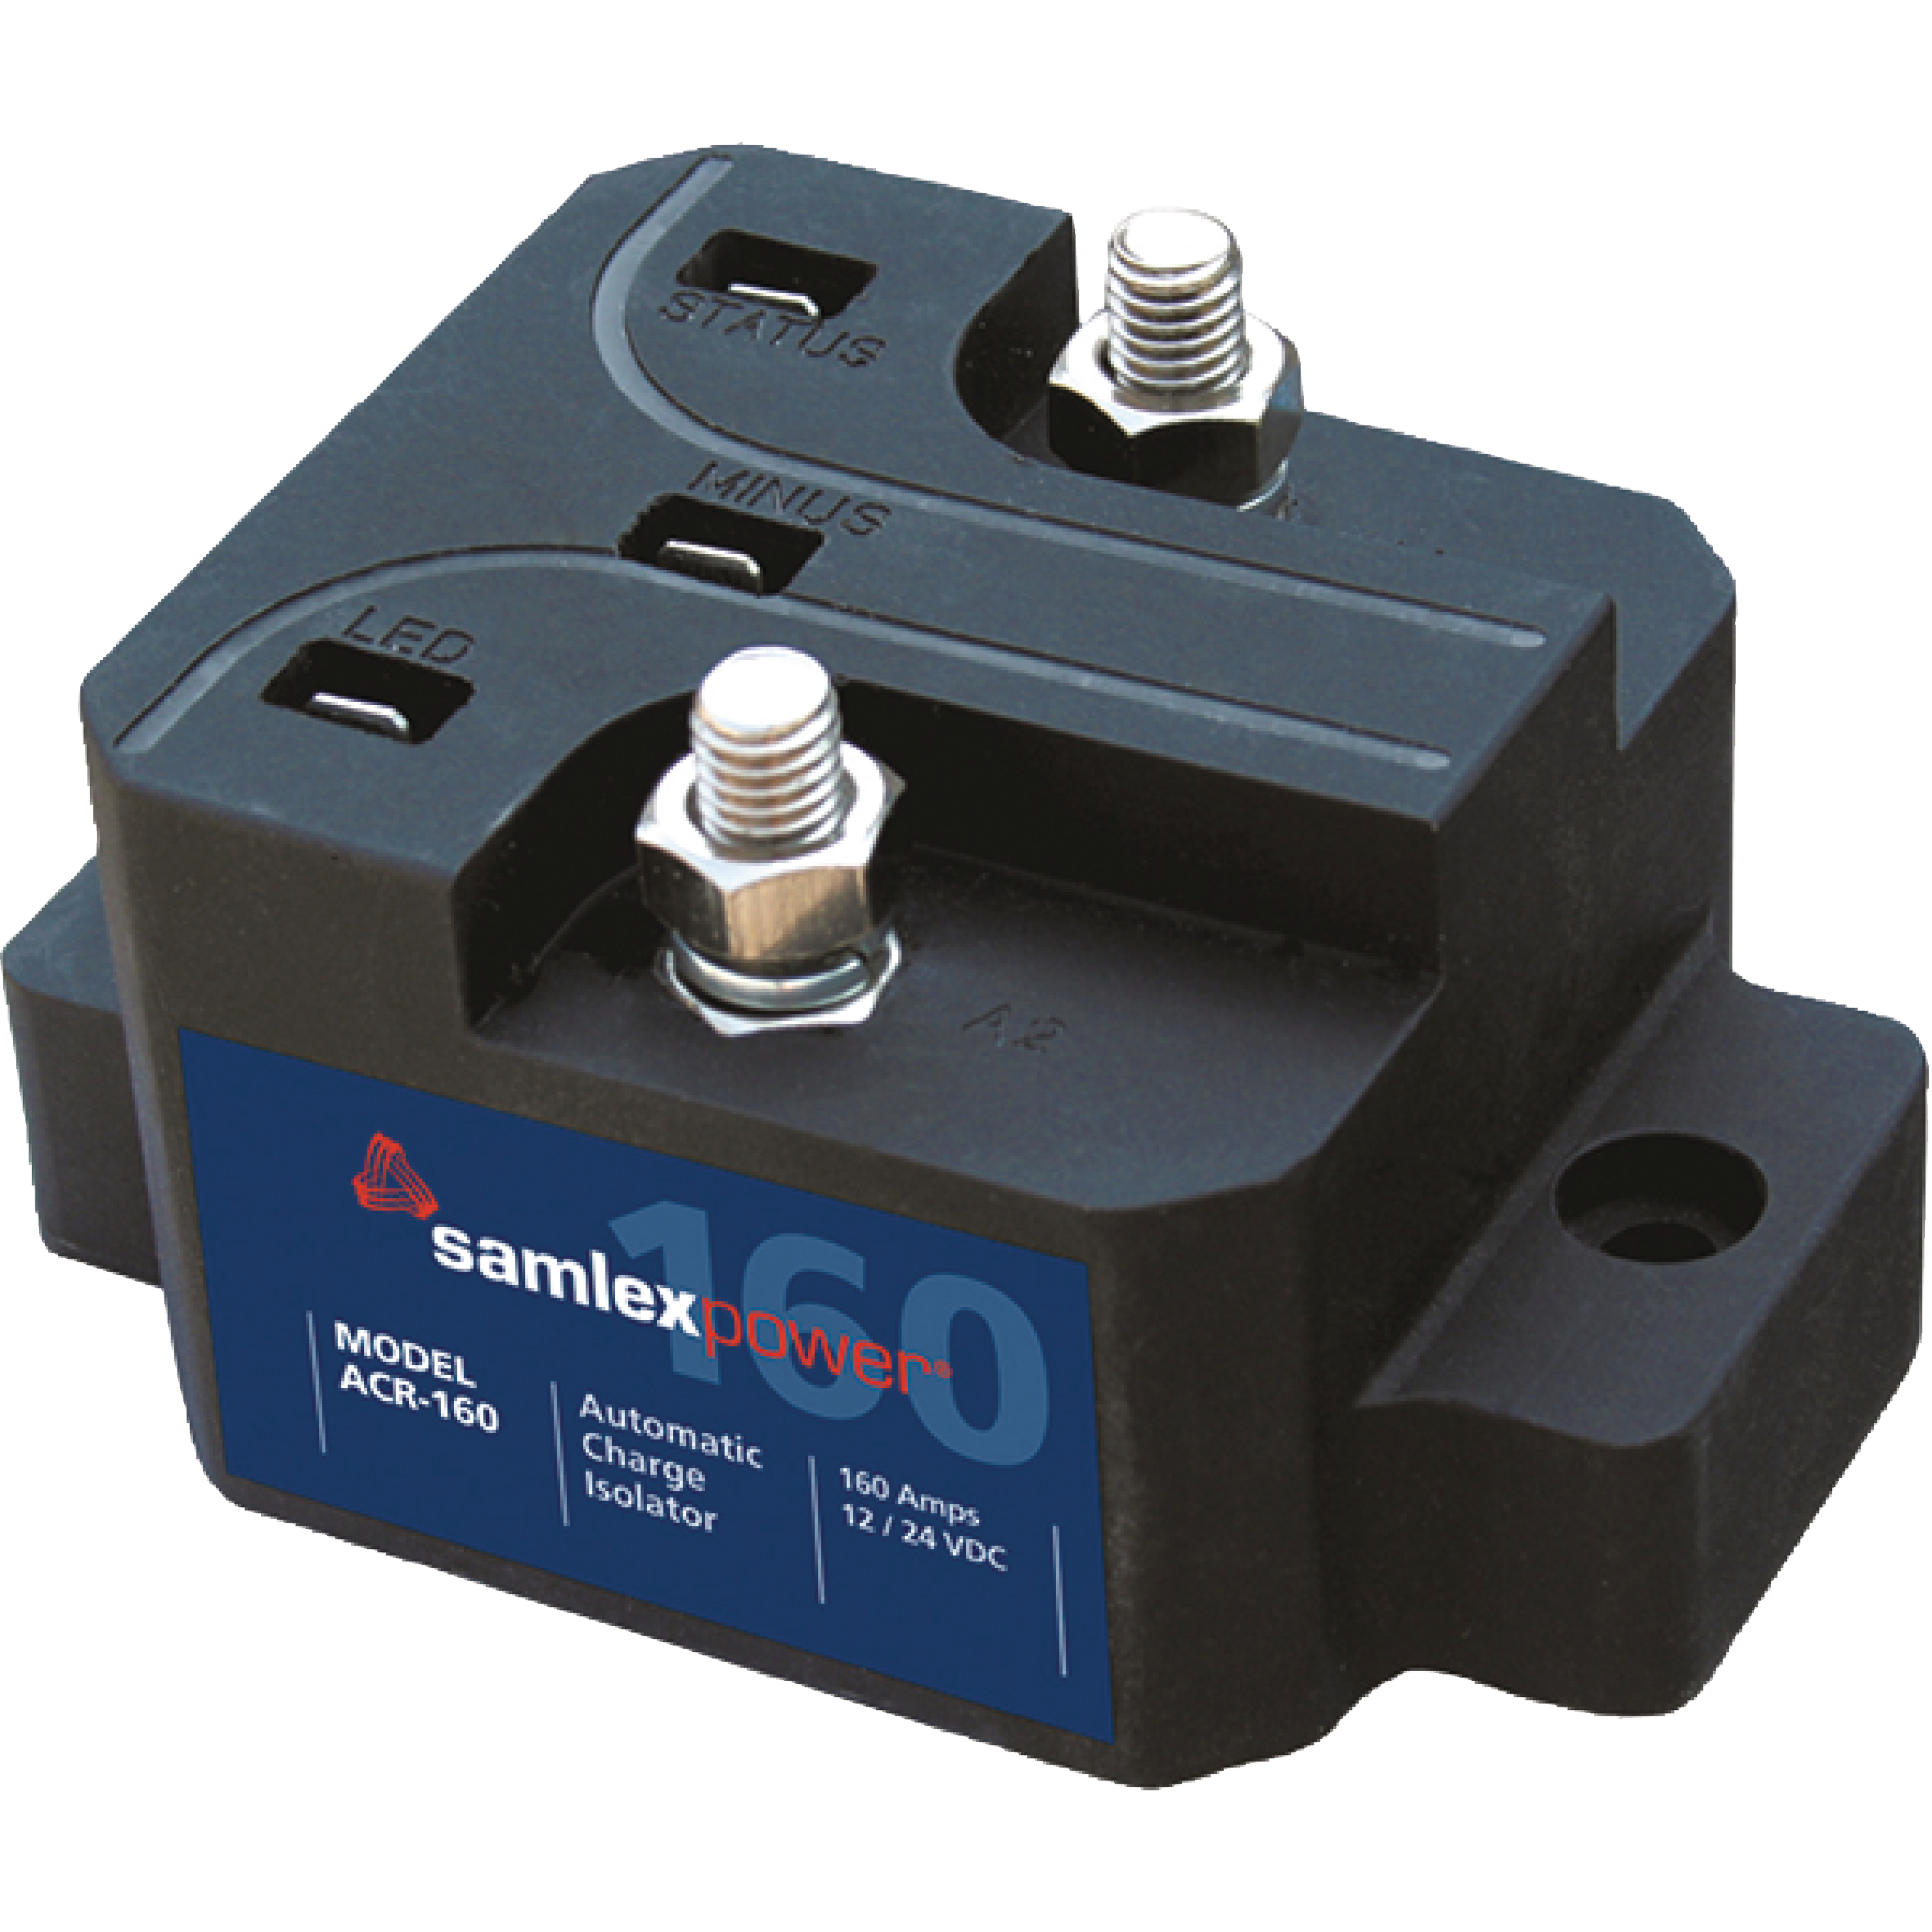 SamlexPower ACR-160 Automatic Charge Isolator